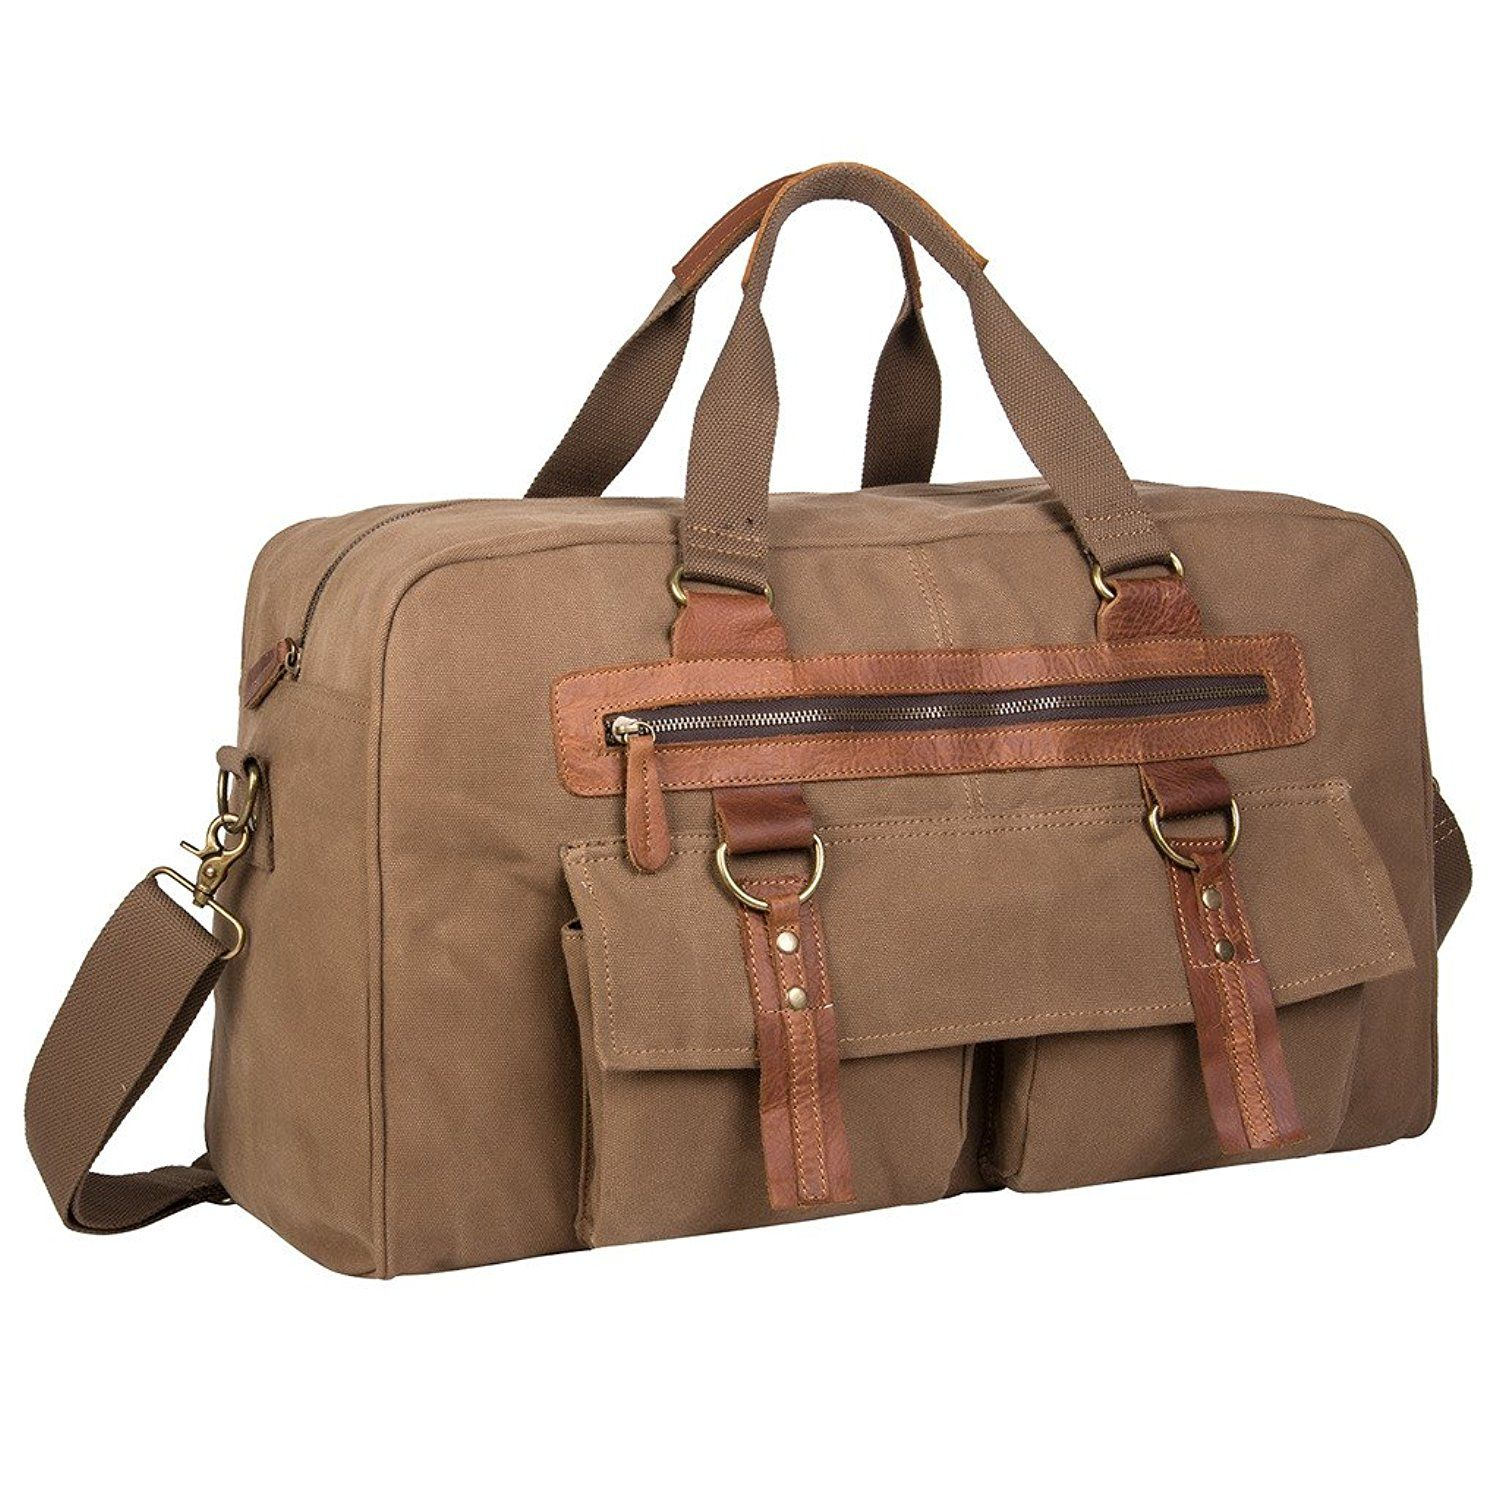 5cdb7110331de0 Coreal Large Vintage Canvas leather Travel Duffle Bag >>> Be sure to check  out this awesome product.